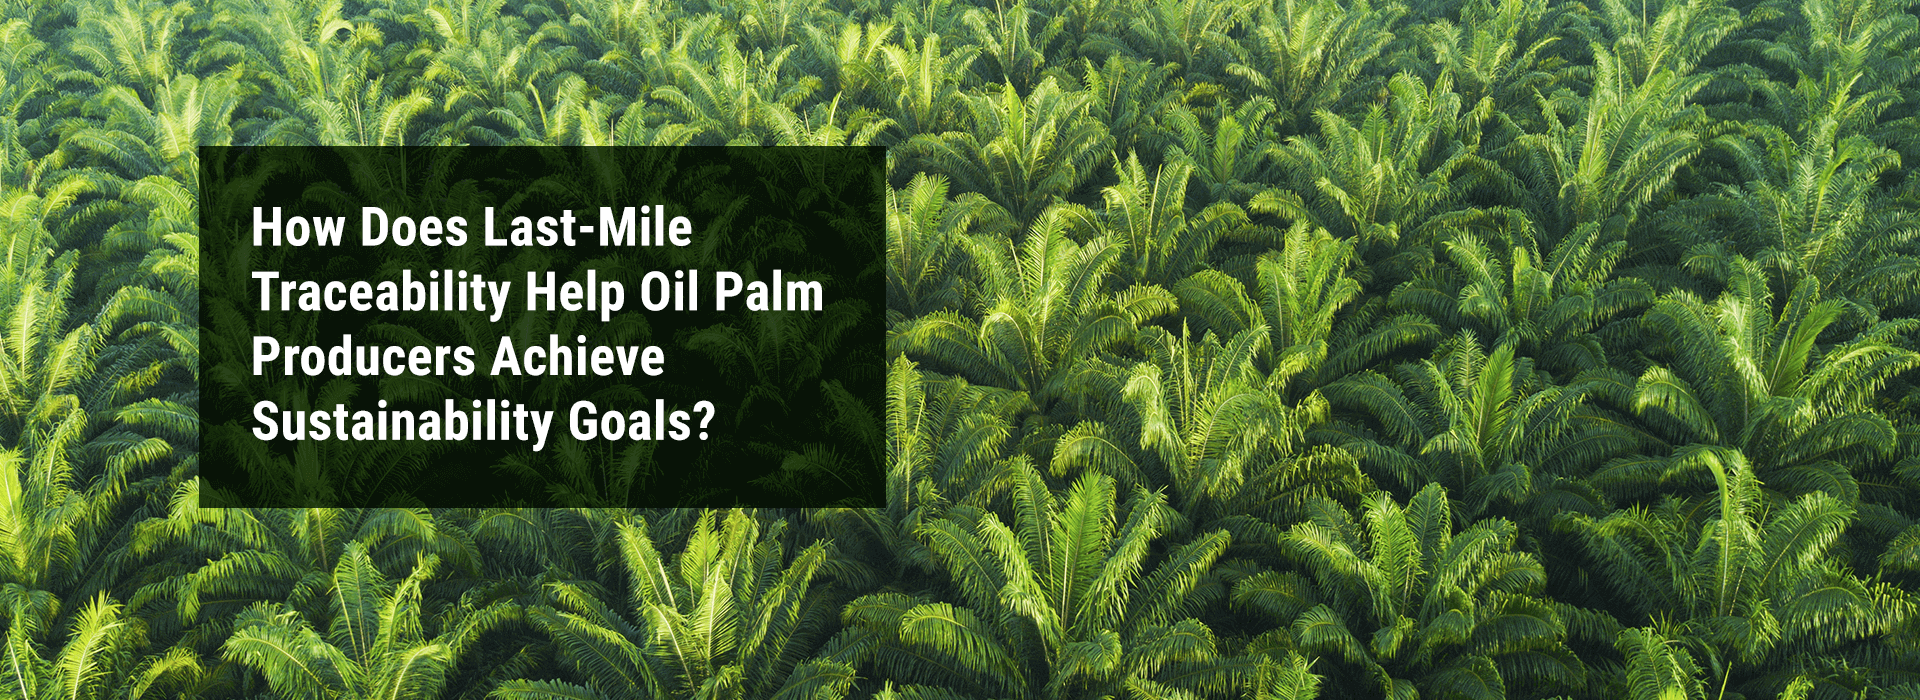 "Banner Image: ""How Does Last-Mile Traceability Help Oil Palm Producers Achieve Sustainability Goals?"""